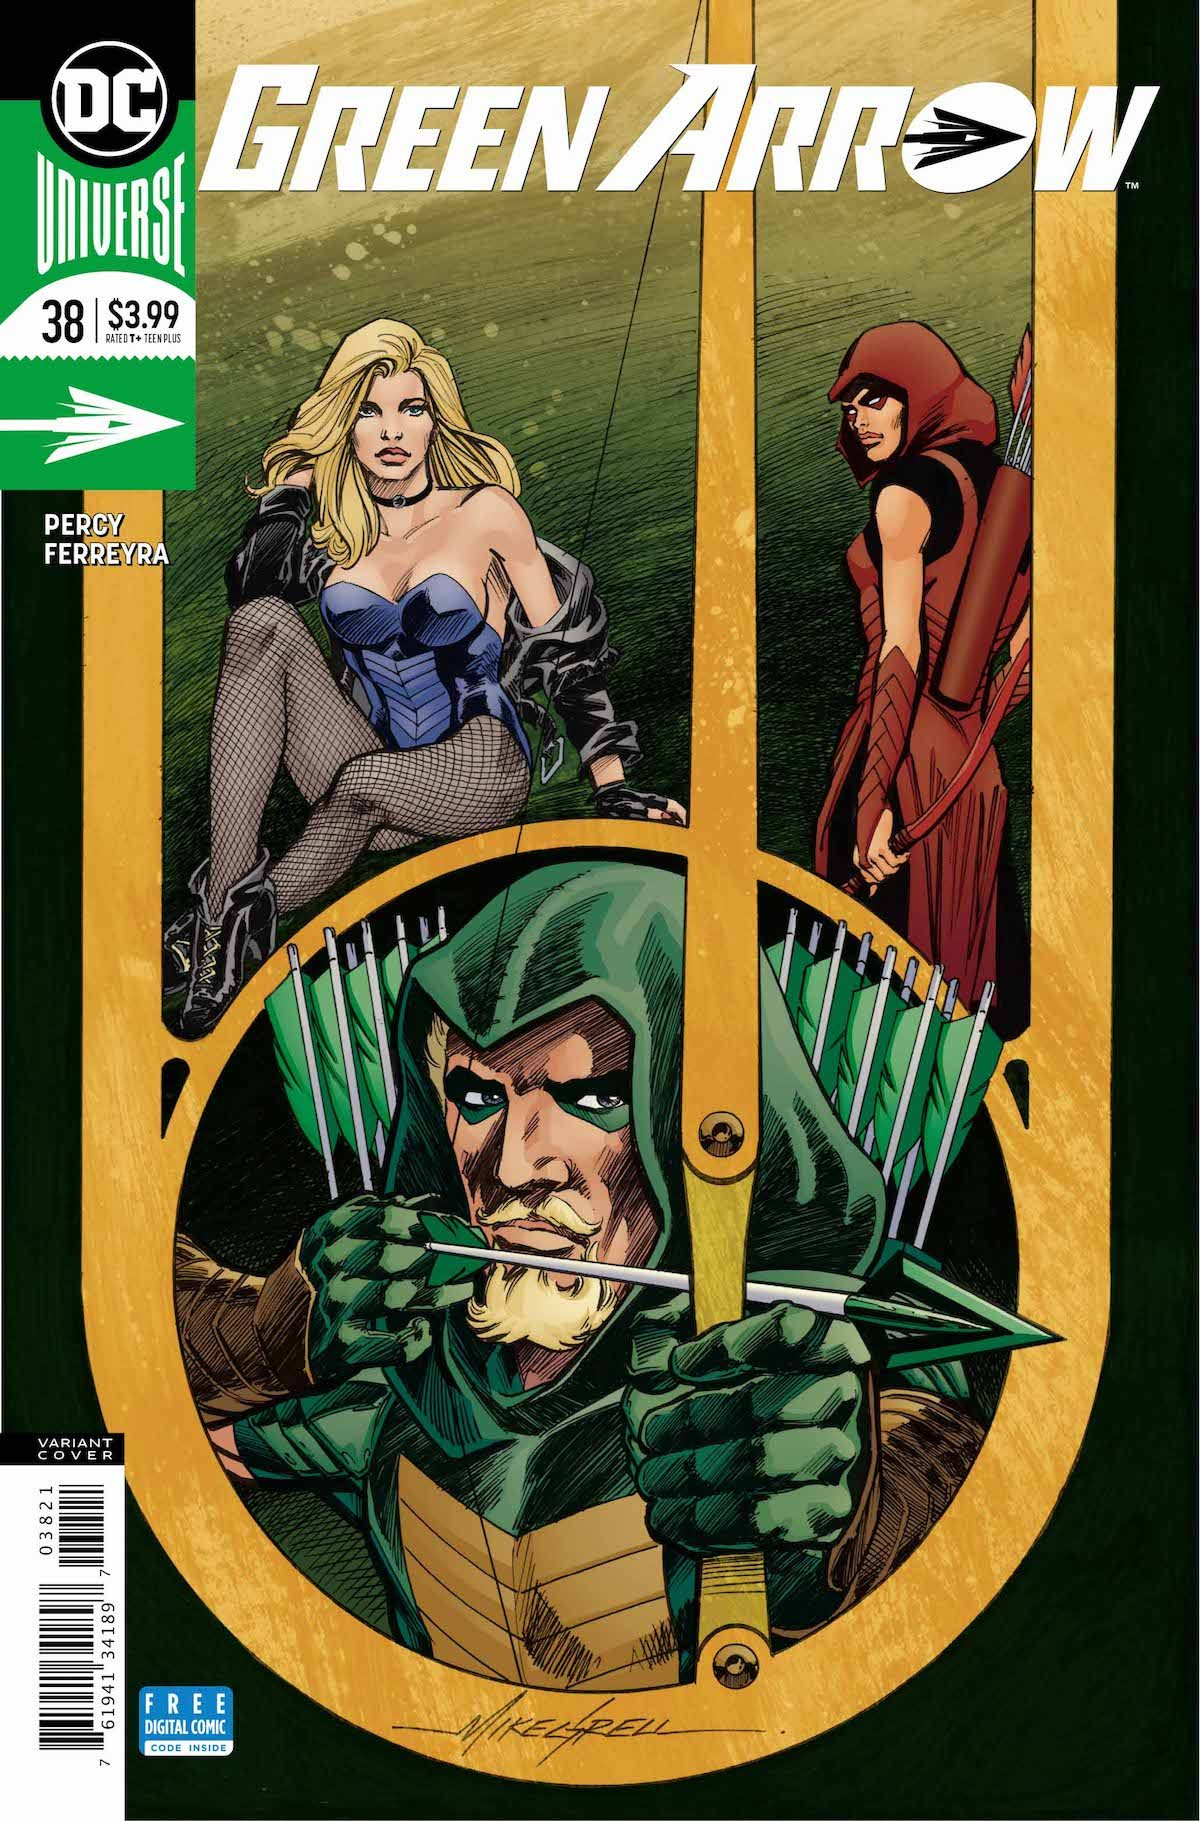 Green Arrow #38 variant cover